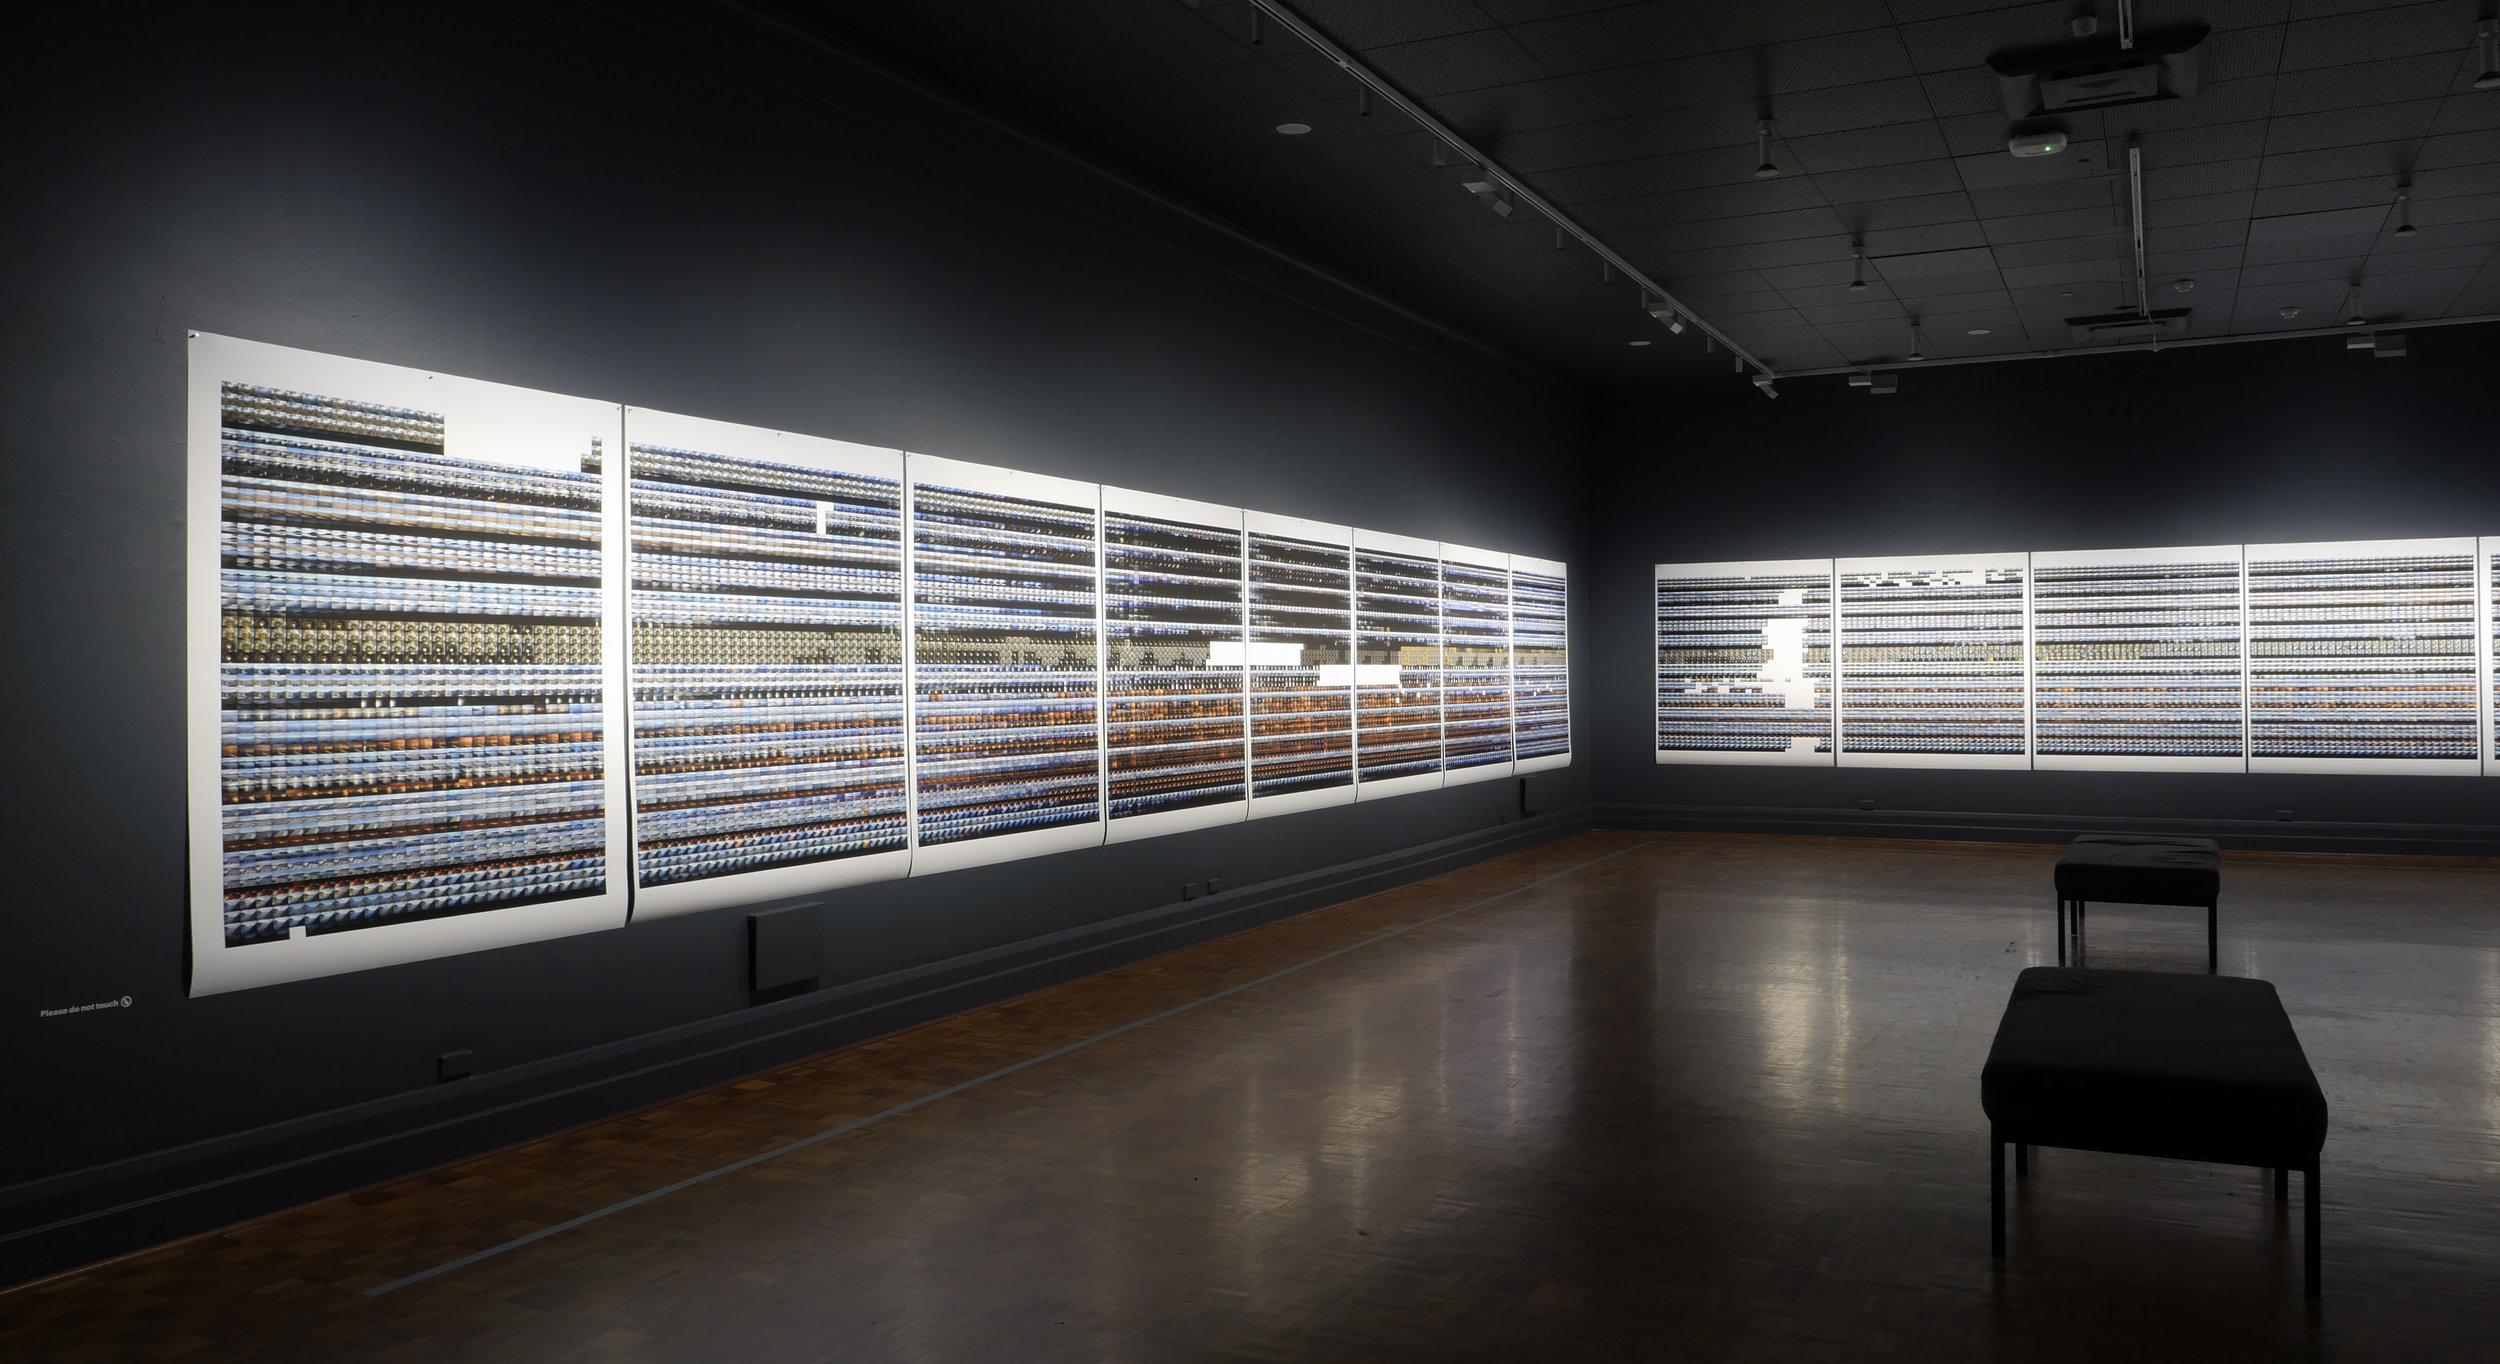 Installation view of  Matrix  in Argyle Gallery 2, 21 pigment ink prints containing more than 30,000 of the 2.5 million images captured by Derwent Time-lapse Array